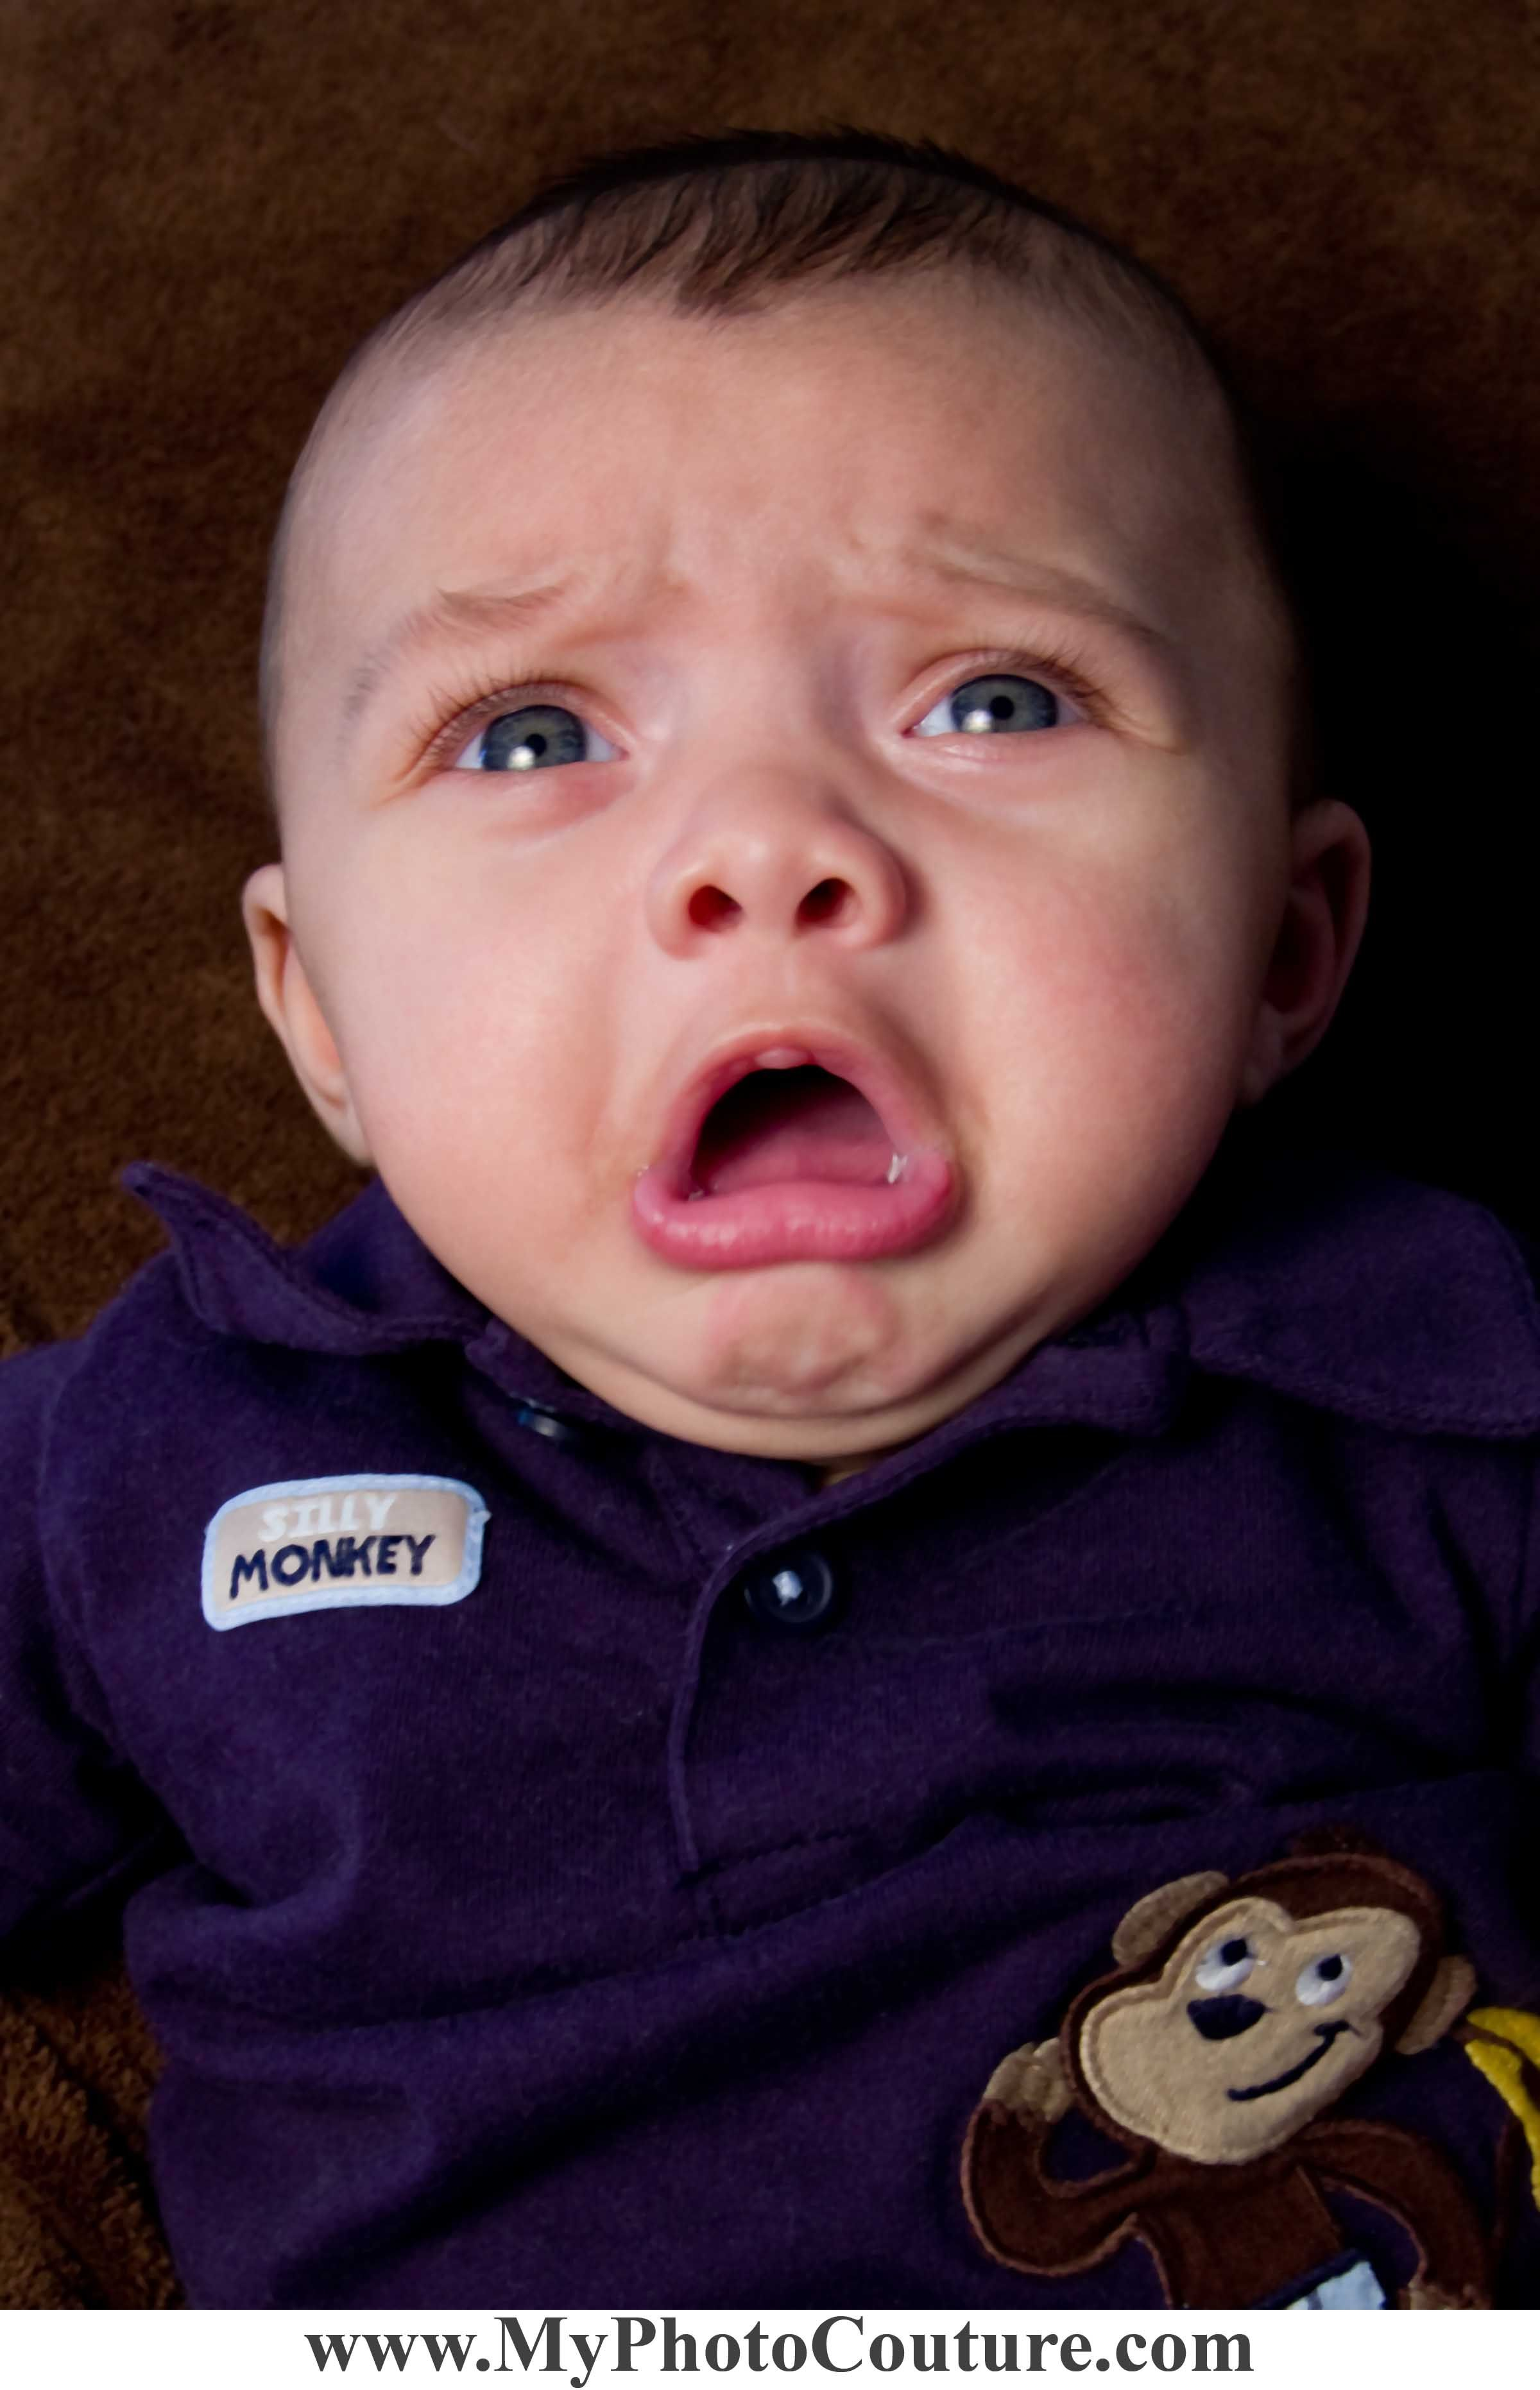 Crying Baby Funny Cute Phototgraphy My Photo Couture